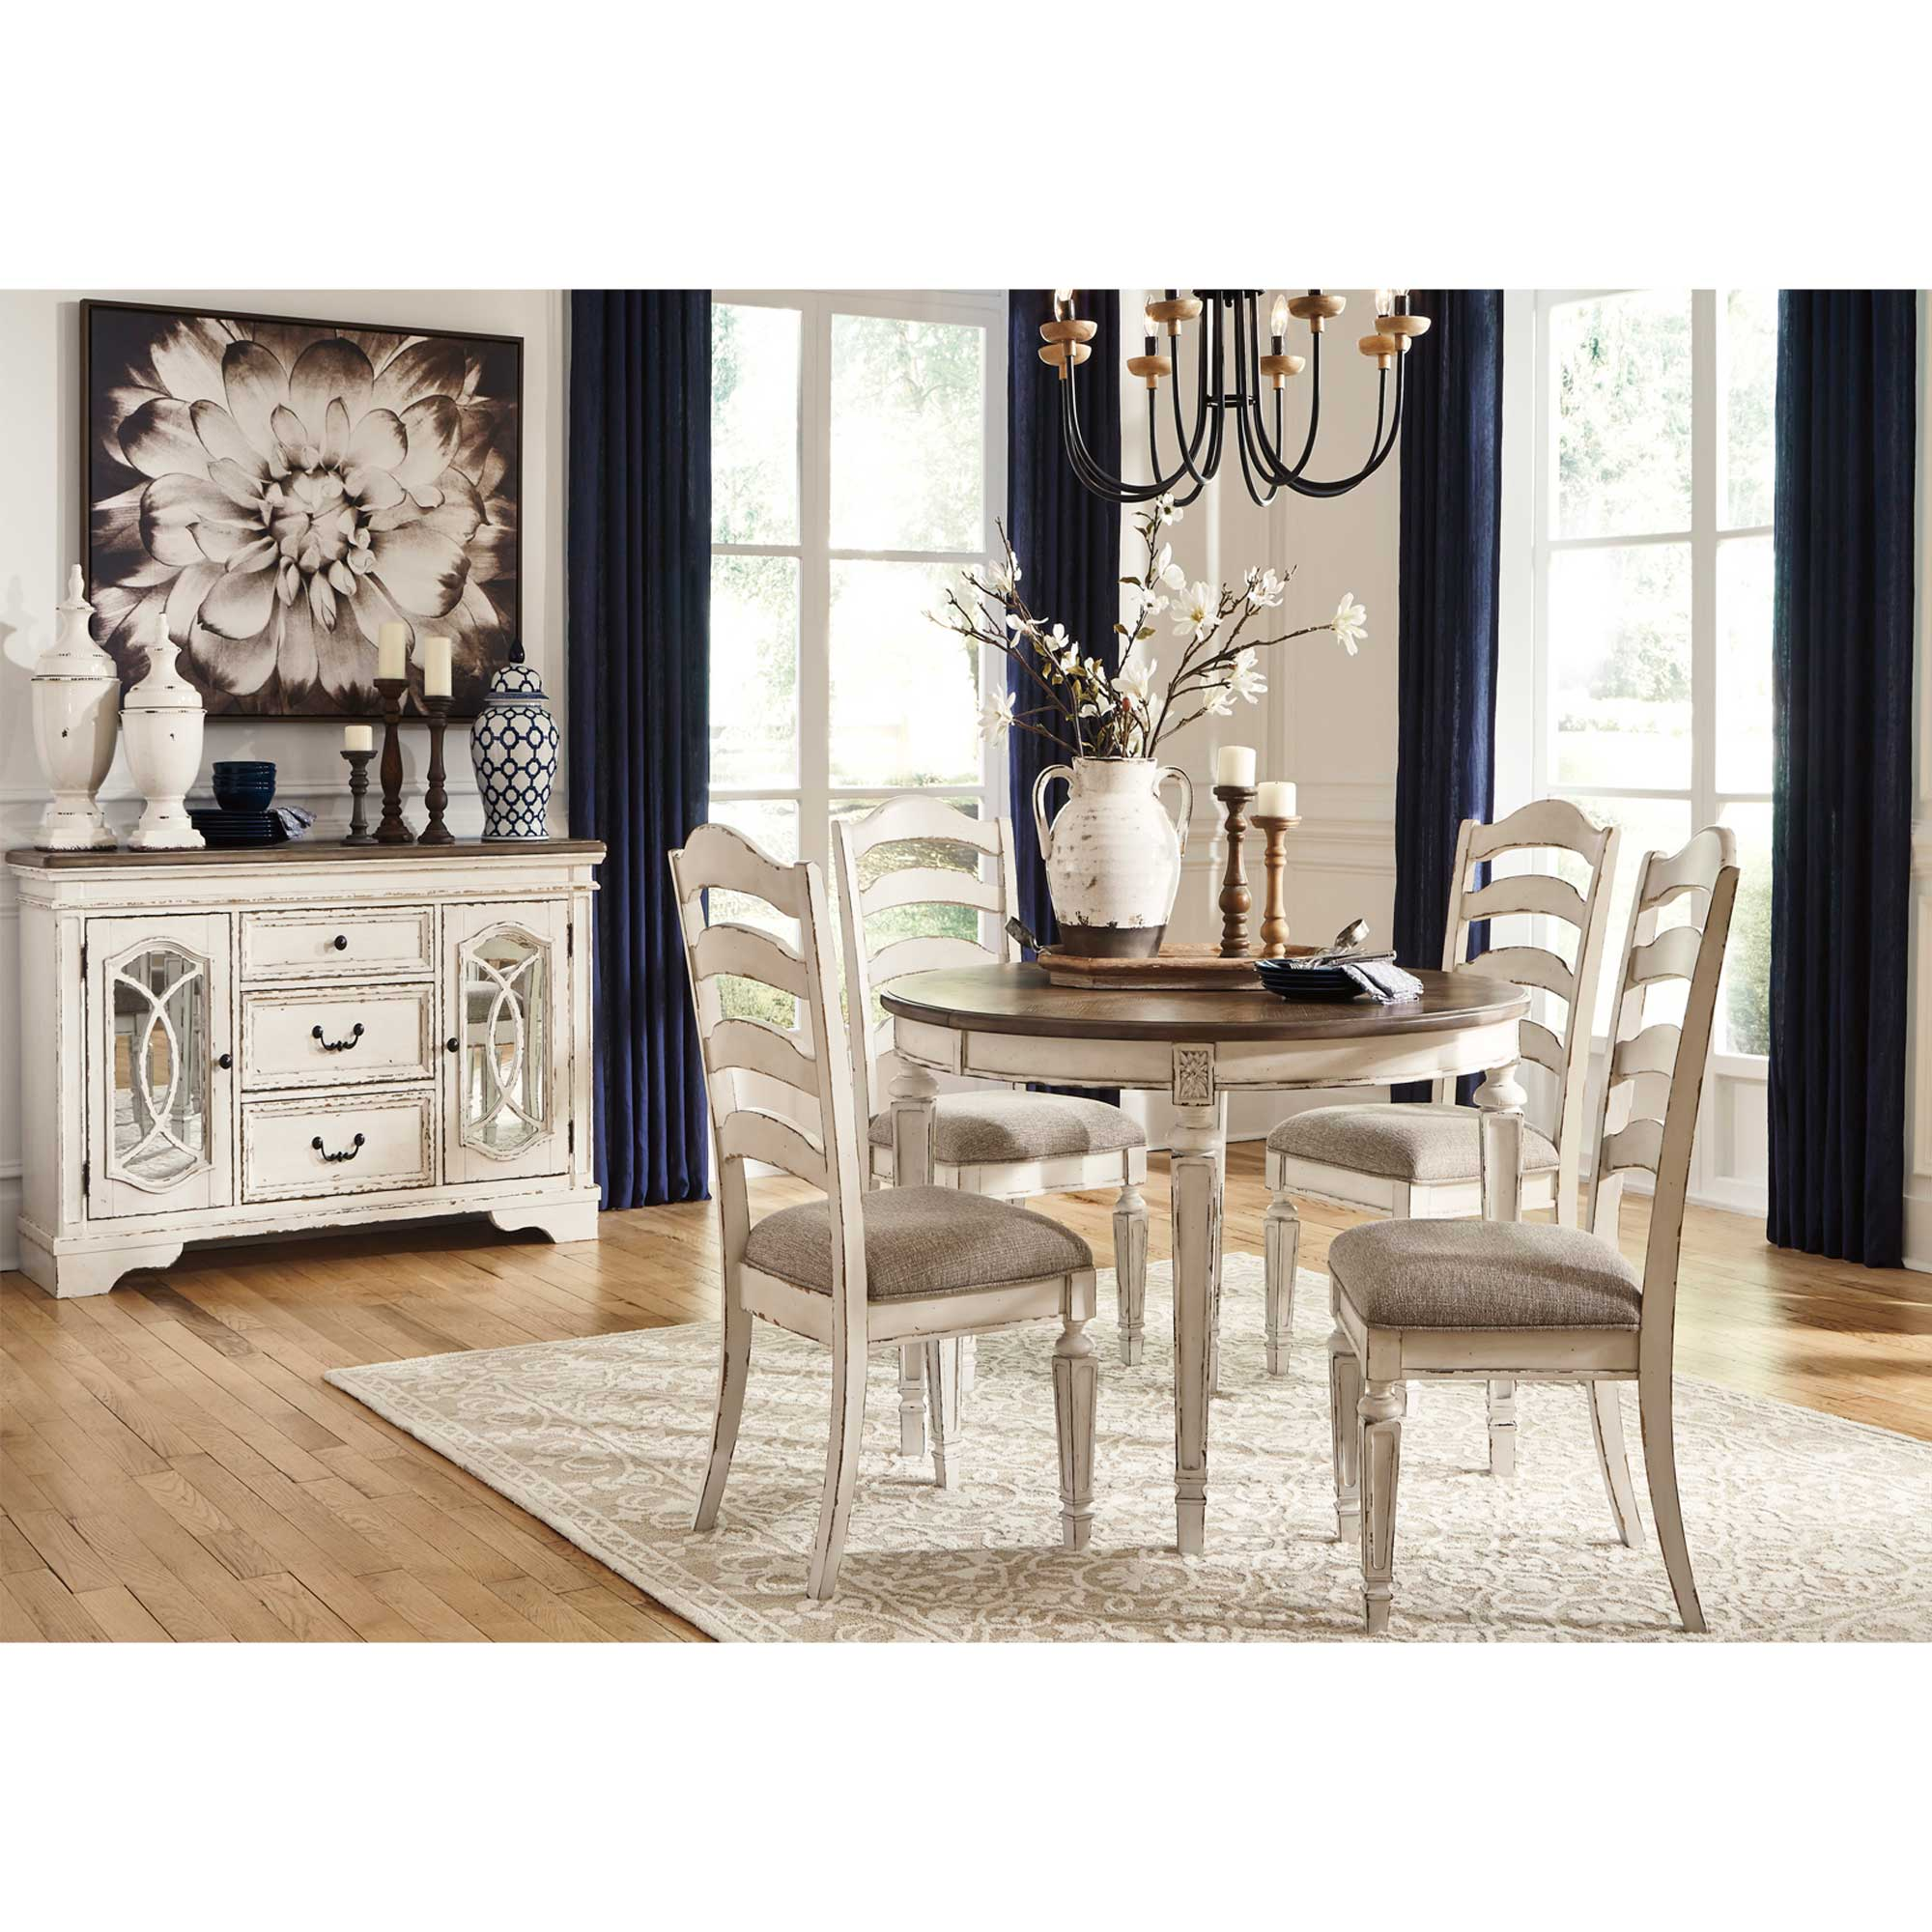 Rent To Own Ashley 6 Piece Realyn Dining Room Collection With Server Buffet At Aaron S Today